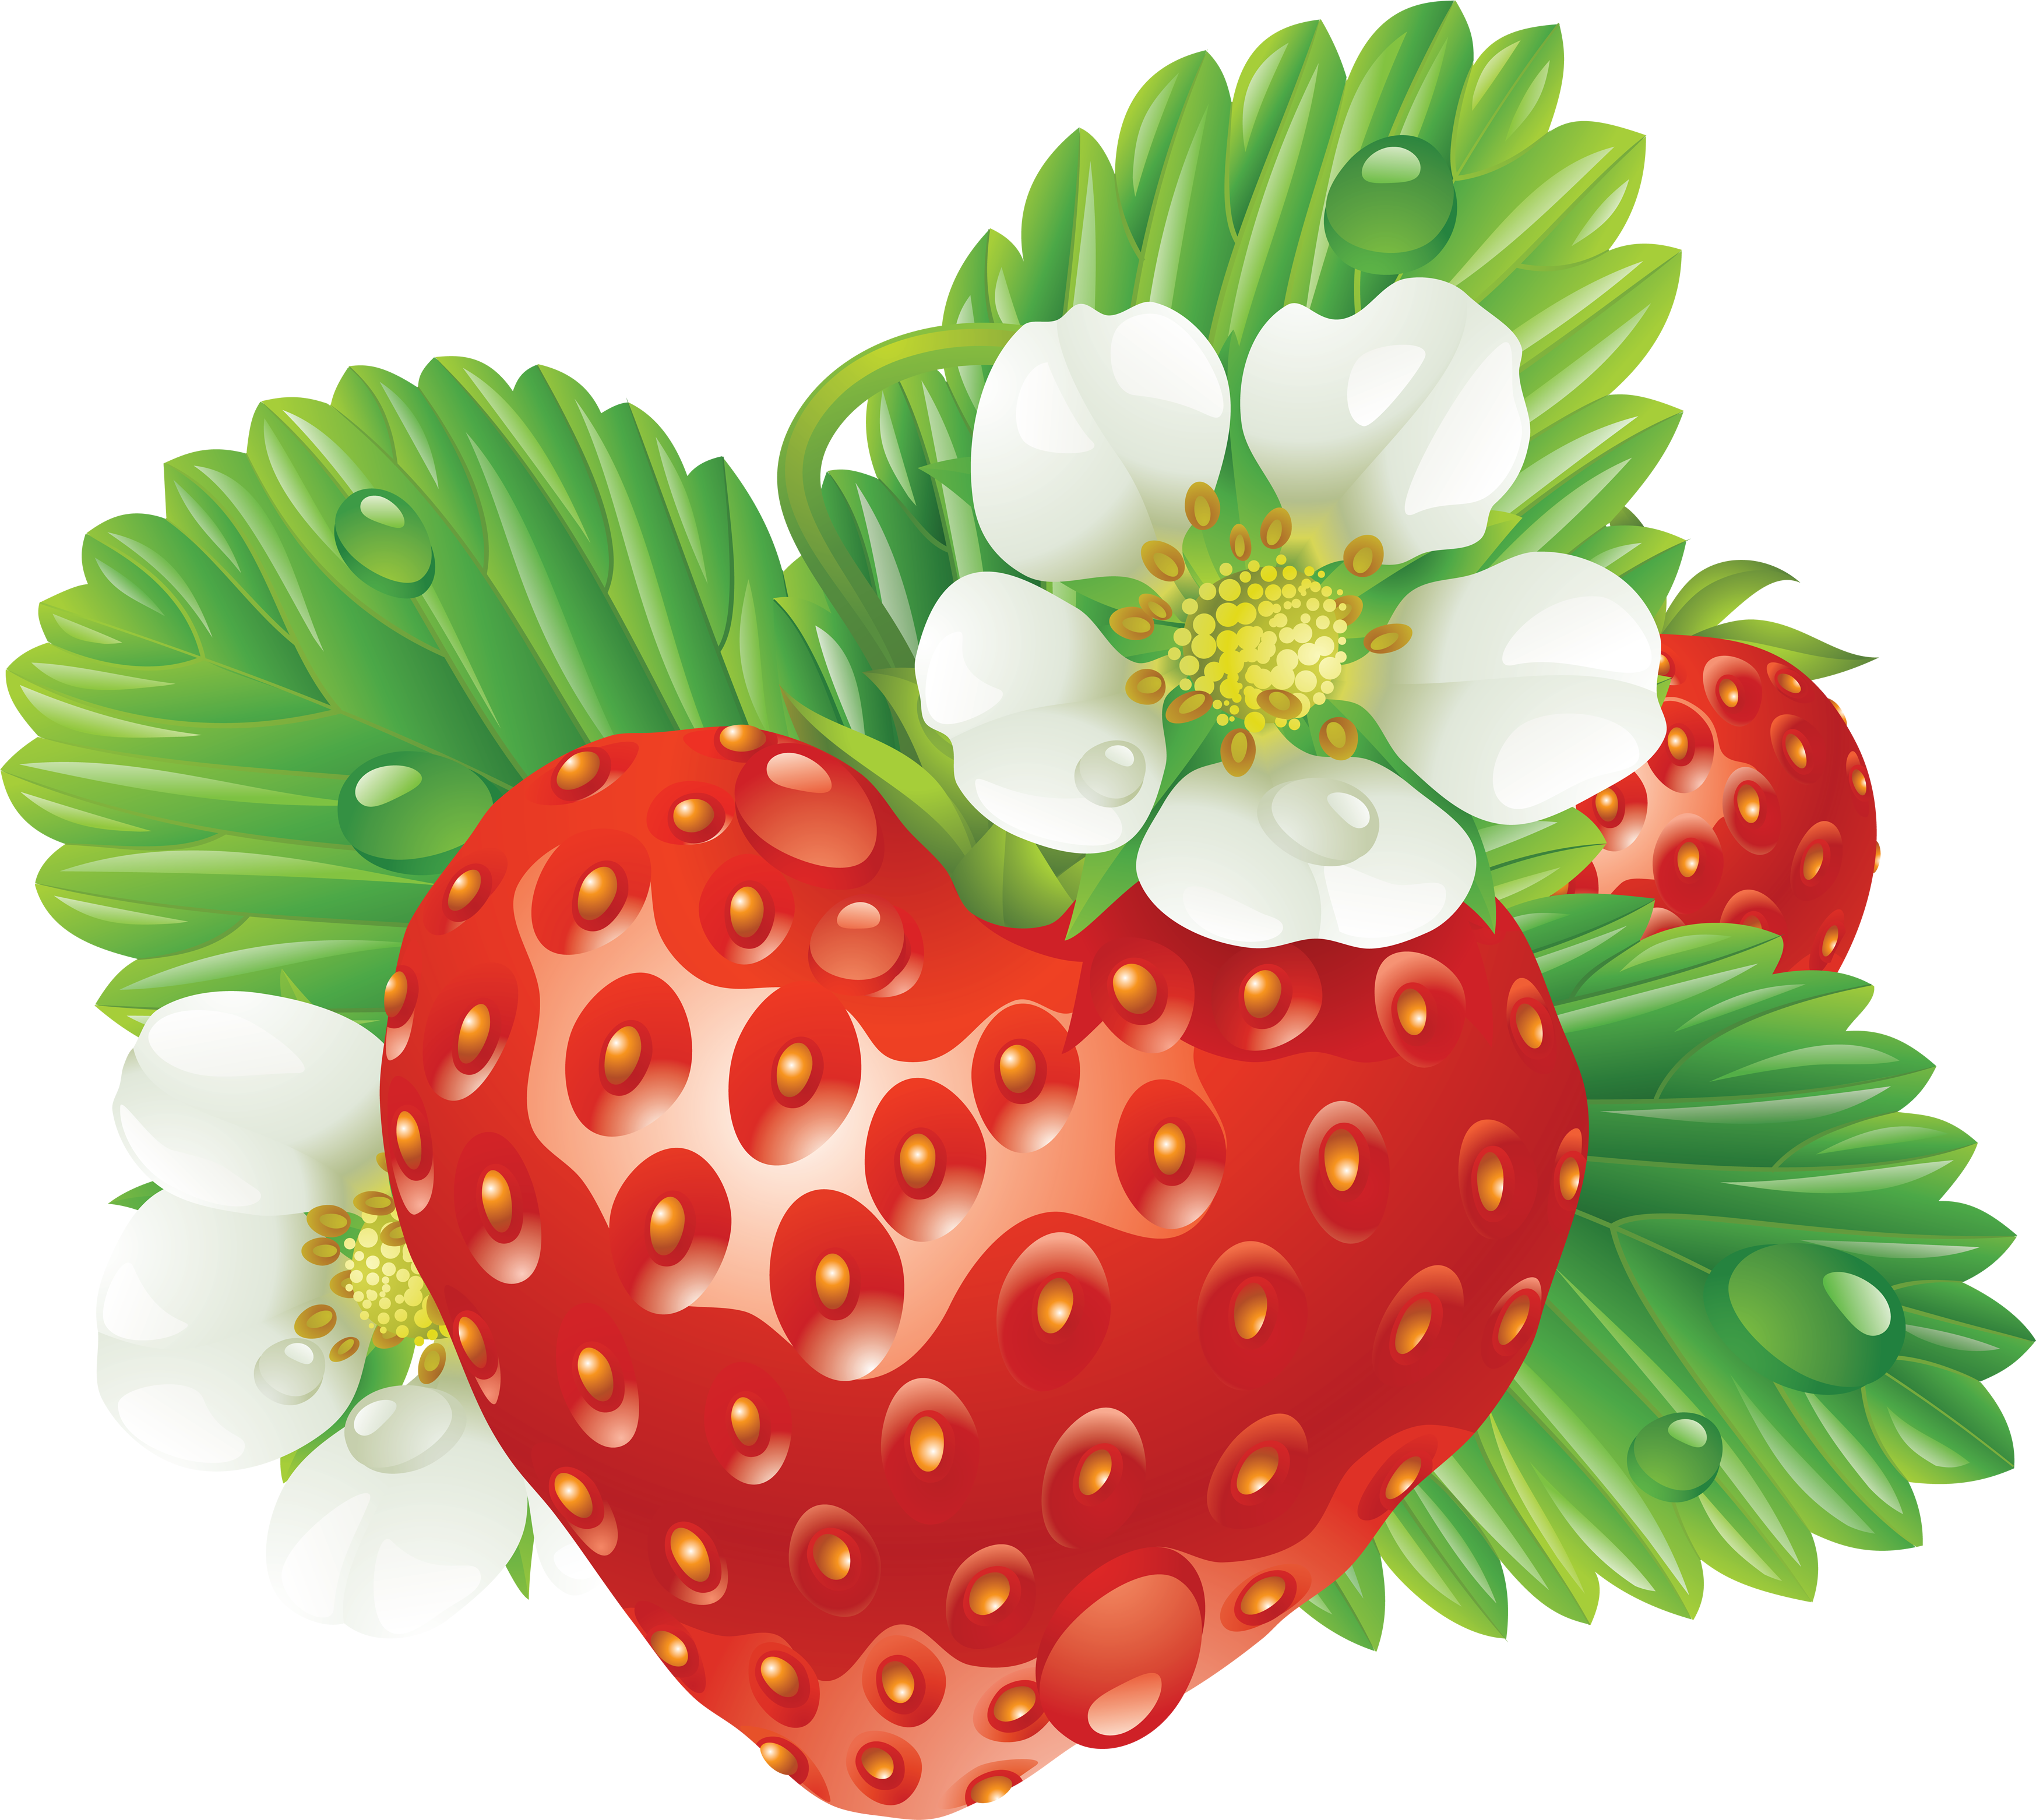 Heart shaped strawberry clipart jpg library stock Strawberry Heart-Shaped PNG Image - PurePNG | Free transparent CC0 ... jpg library stock